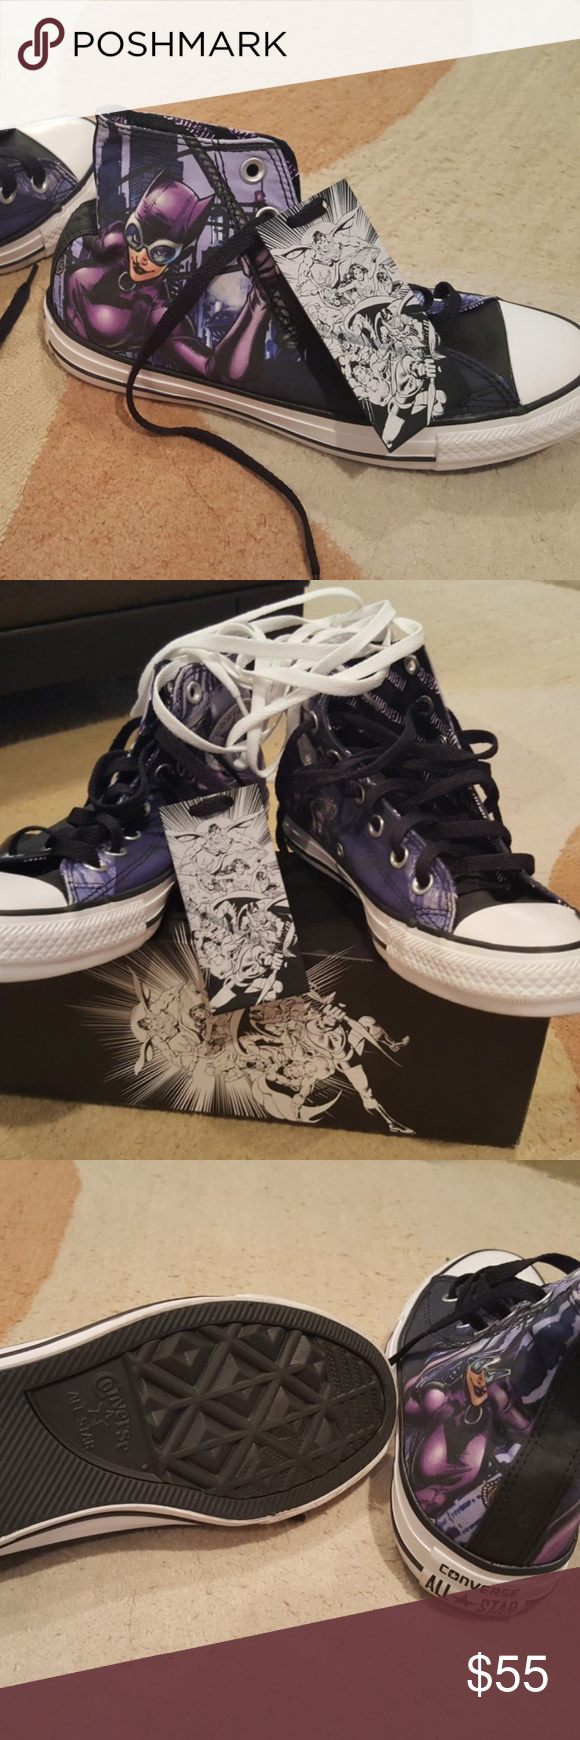 125bb6e86928 Converse Hi All Star DC Comics CatWoman Converse Chuck Taylor Hi All Star  DC Comics CatWoman 150865C Purple Unisex Shoes-Never Worn-Still in the  Box-Comes ...